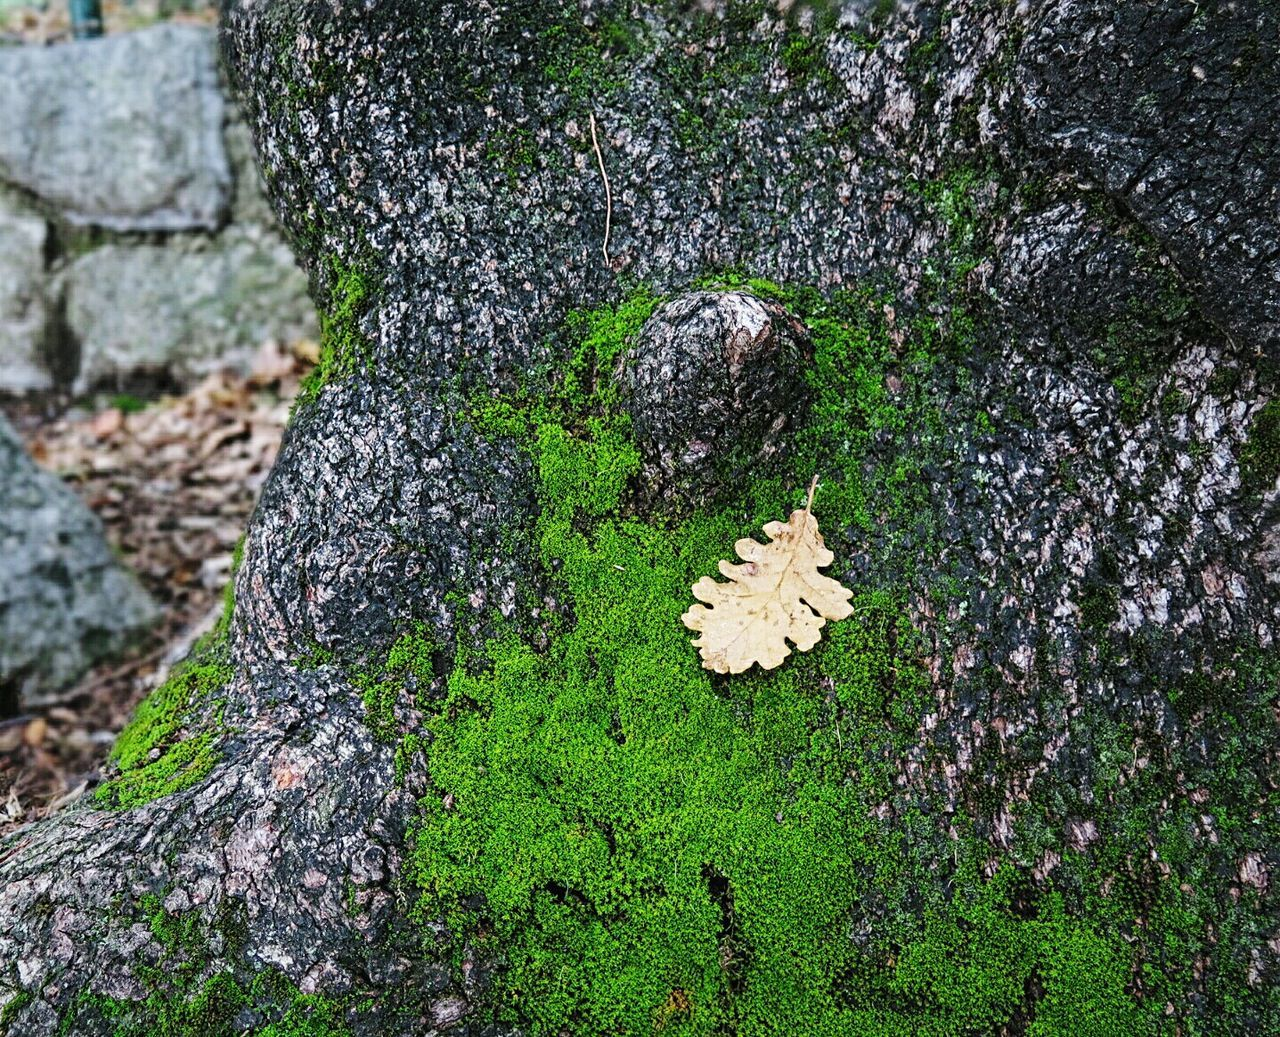 rock - object, moss, nature, no people, outdoors, day, lichen, beauty in nature, tree trunk, growth, close-up, fungus, animal themes, tree, toadstool, freshness